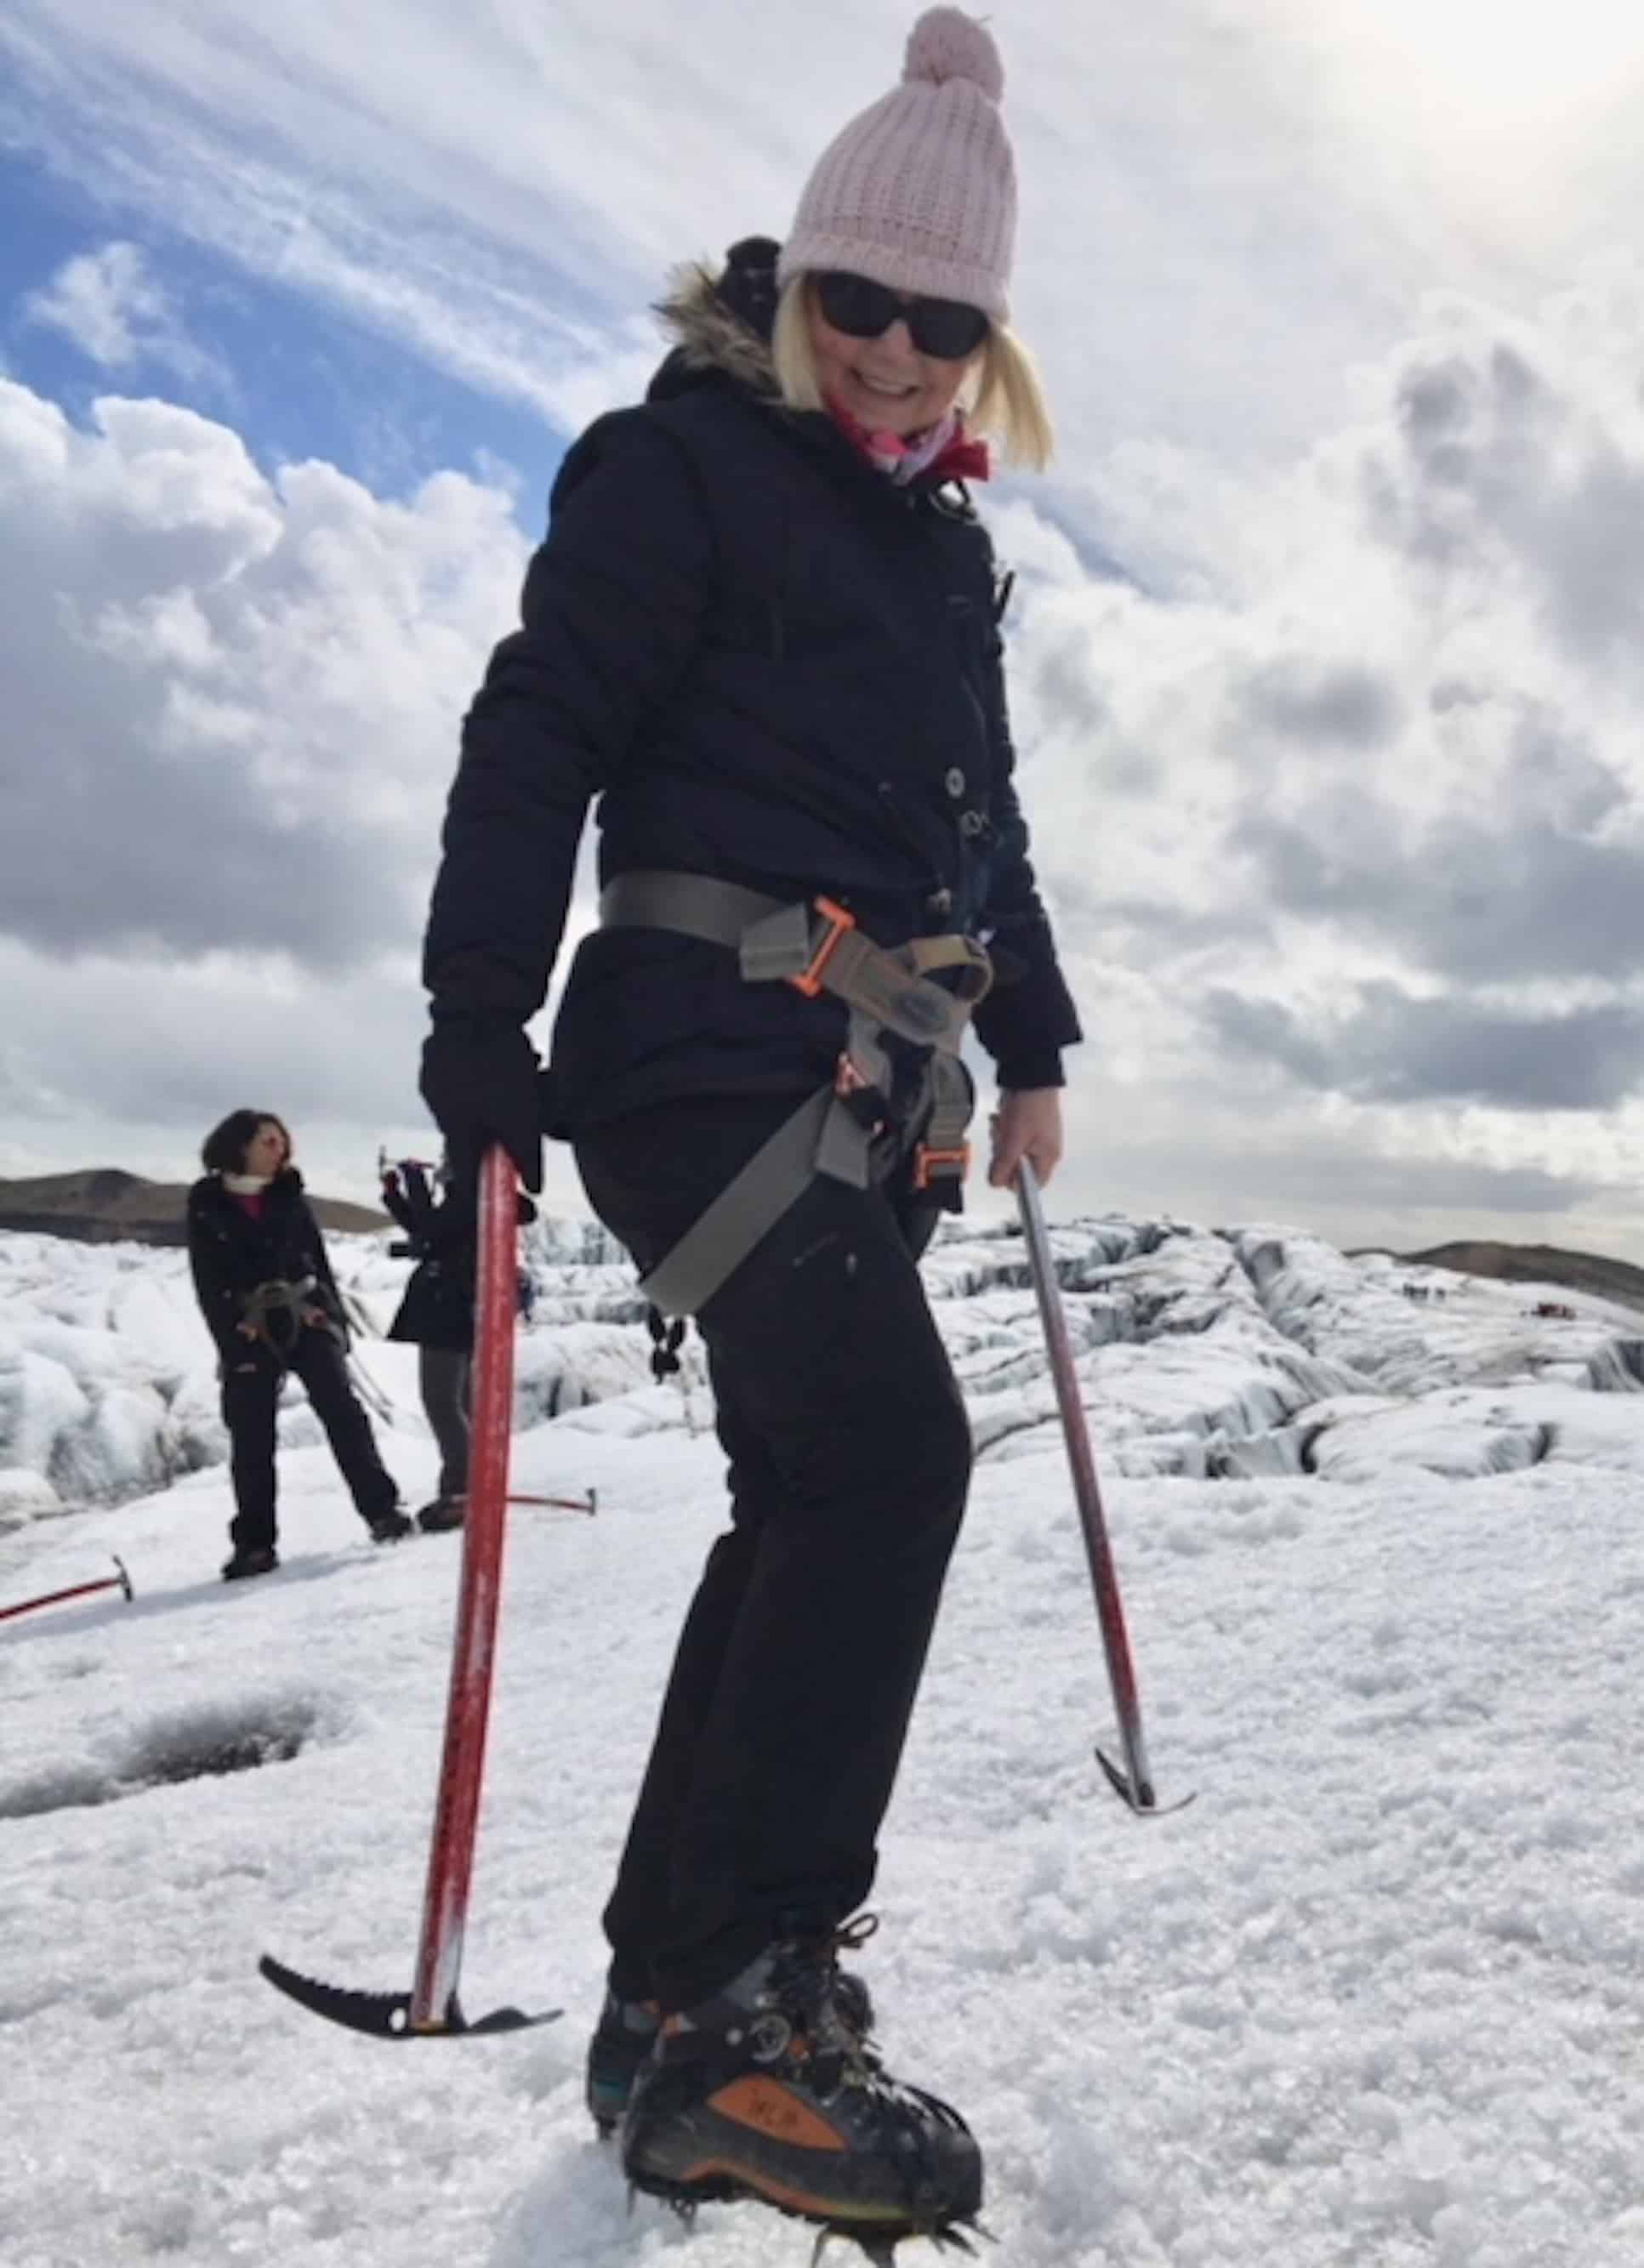 Over 50 and fabulous: Travel adventures from our customers: Mature woman glacier walking